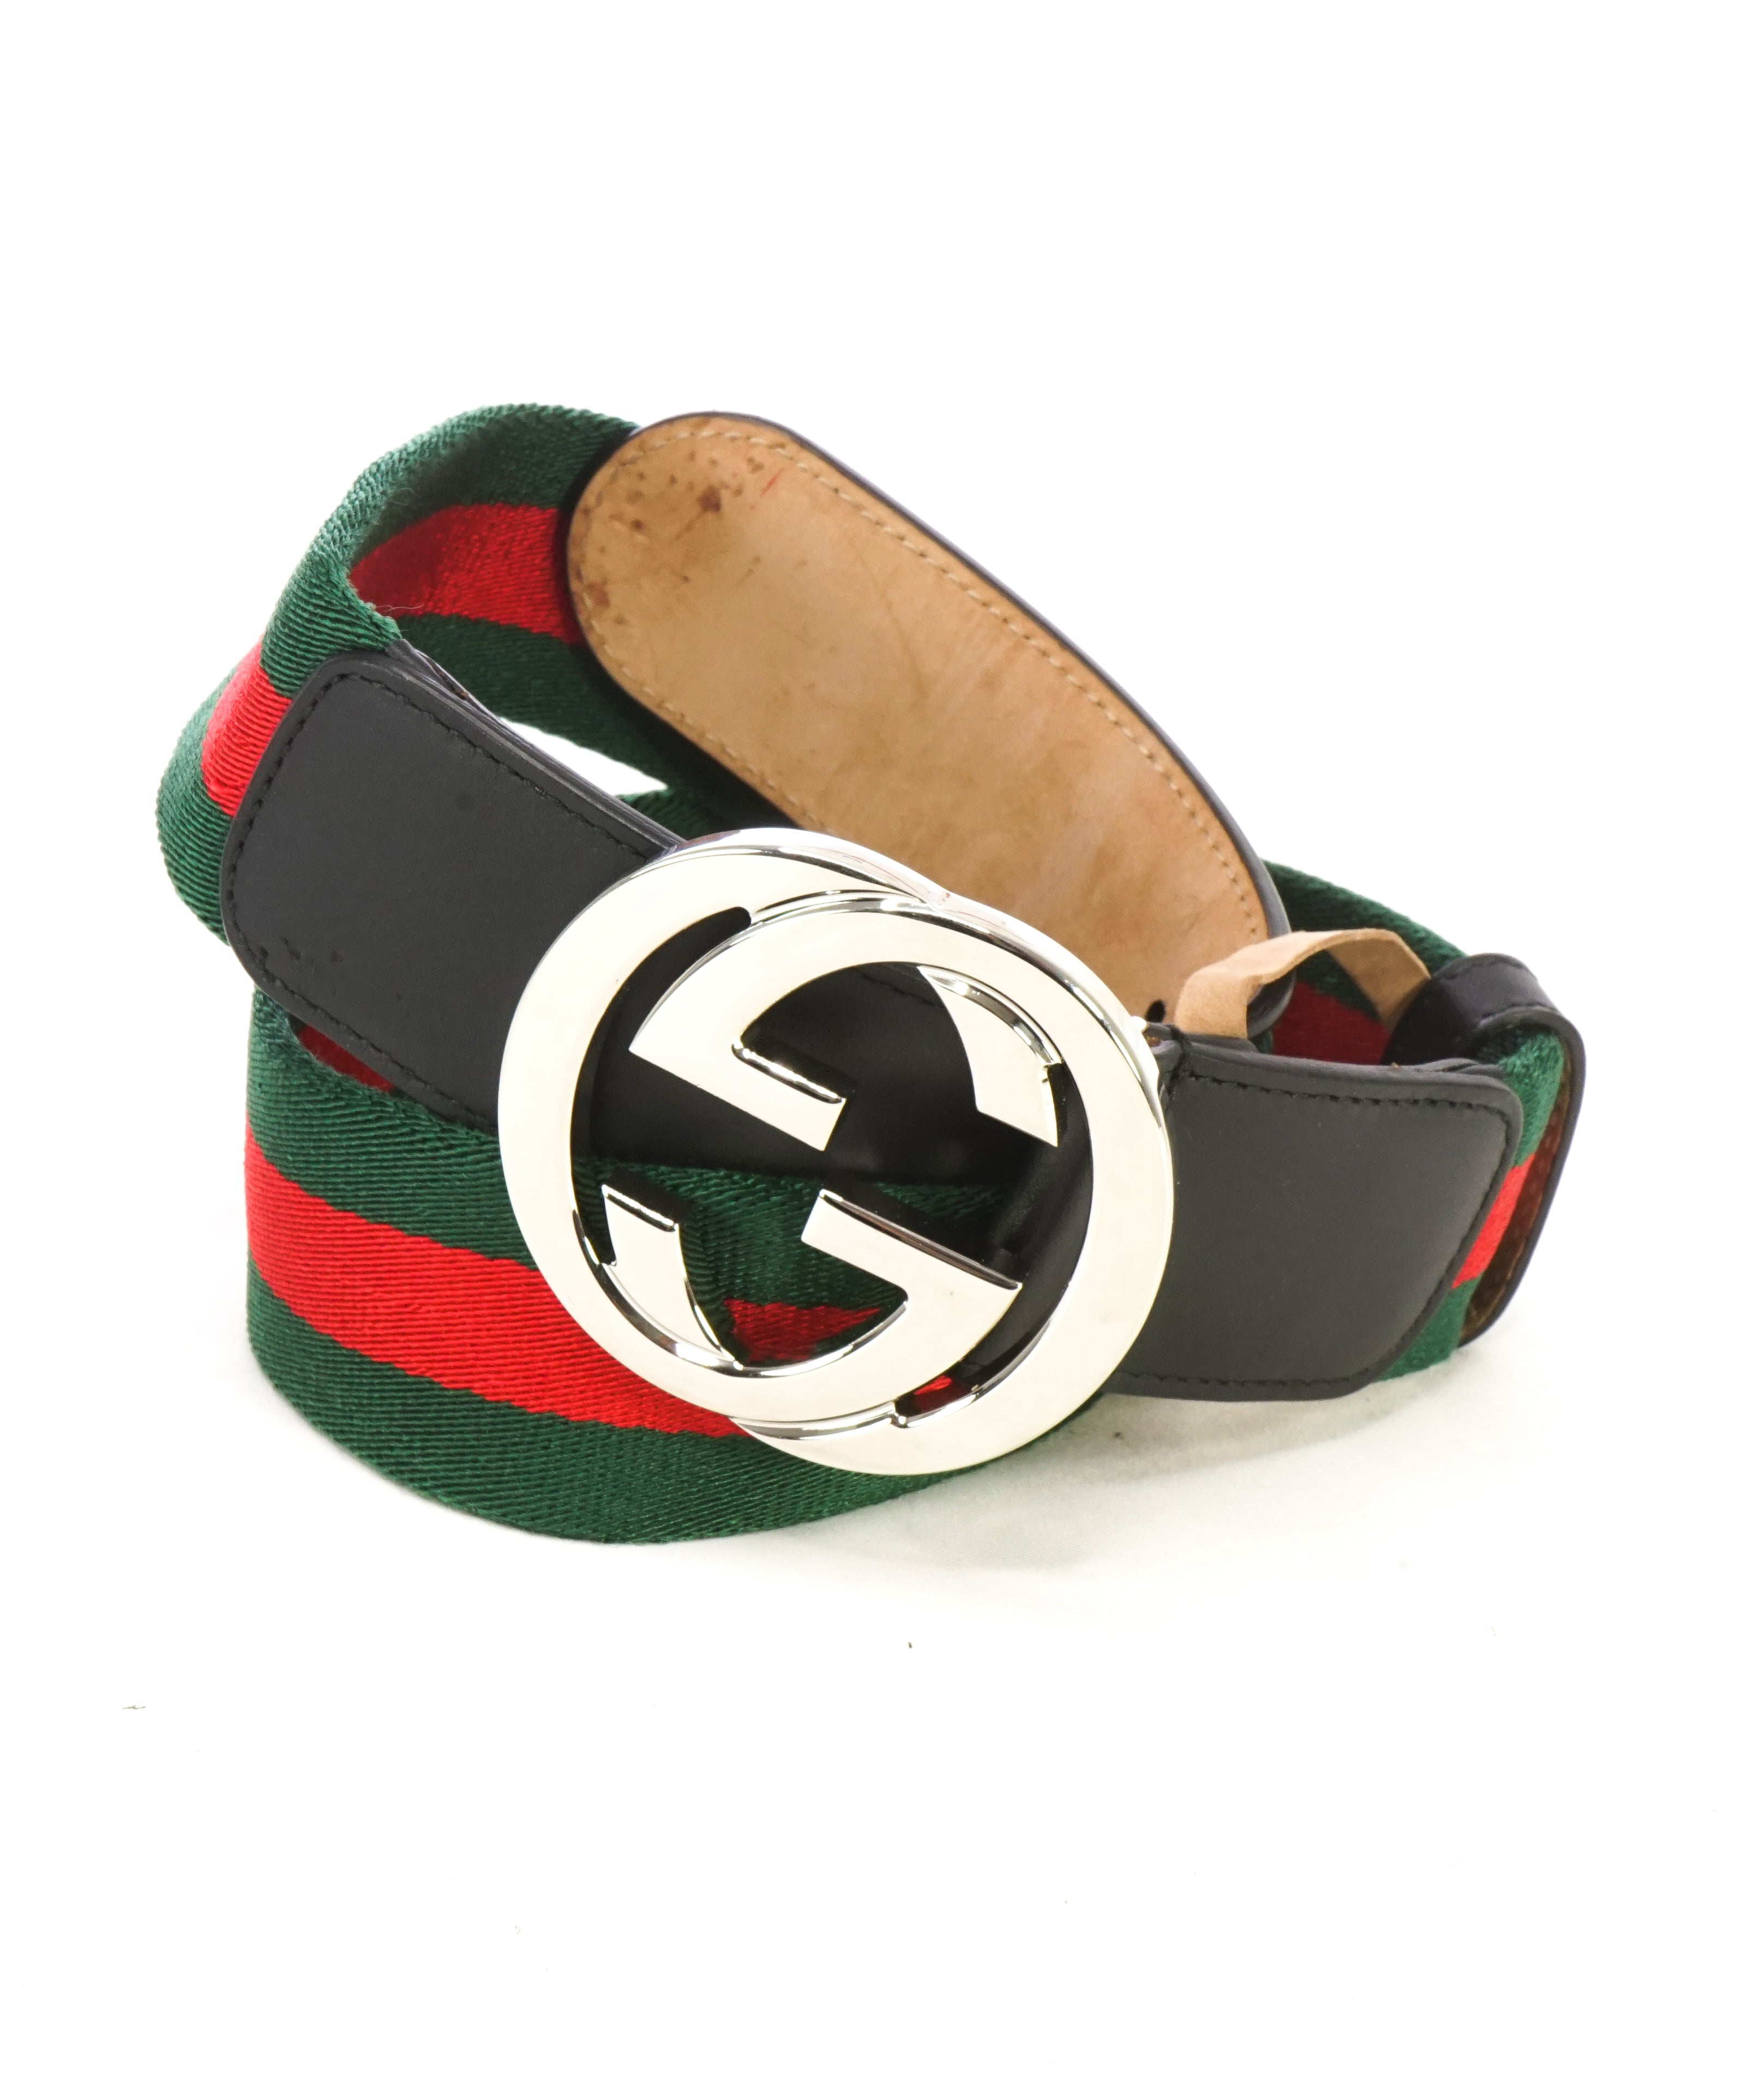 GUCCI - Interlocking GG Belt Leather & Red/Green Web - 32W (80CM)